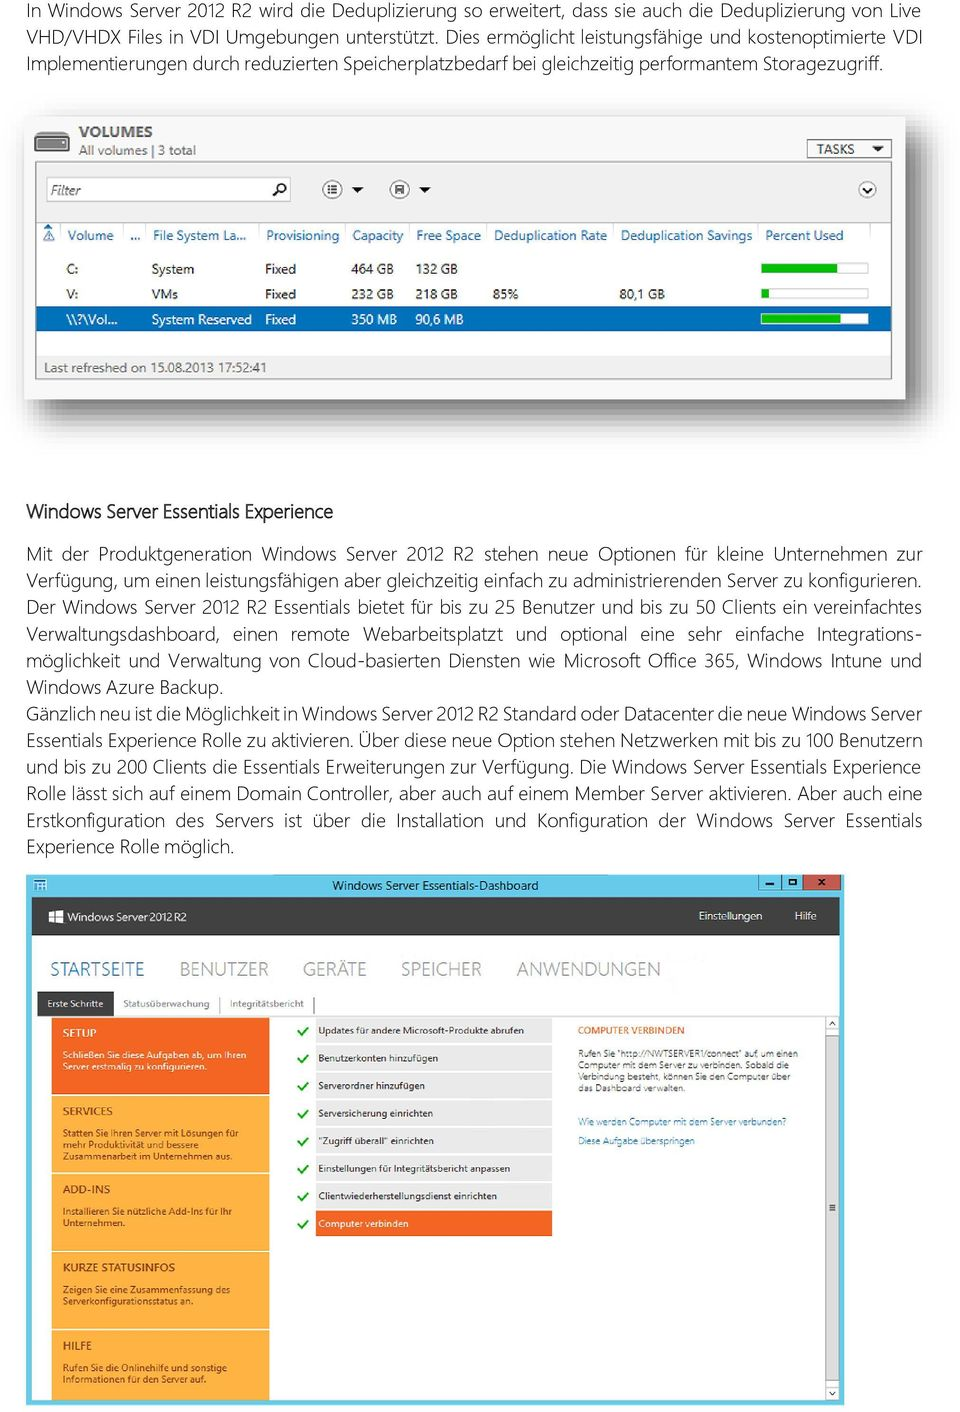 Windows Server Essentials Experience Mit der Produktgeneration Windows Server 2012 R2 stehen neue Optionen für kleine Unternehmen zur Verfügung, um einen leistungsfähigen aber gleichzeitig einfach zu